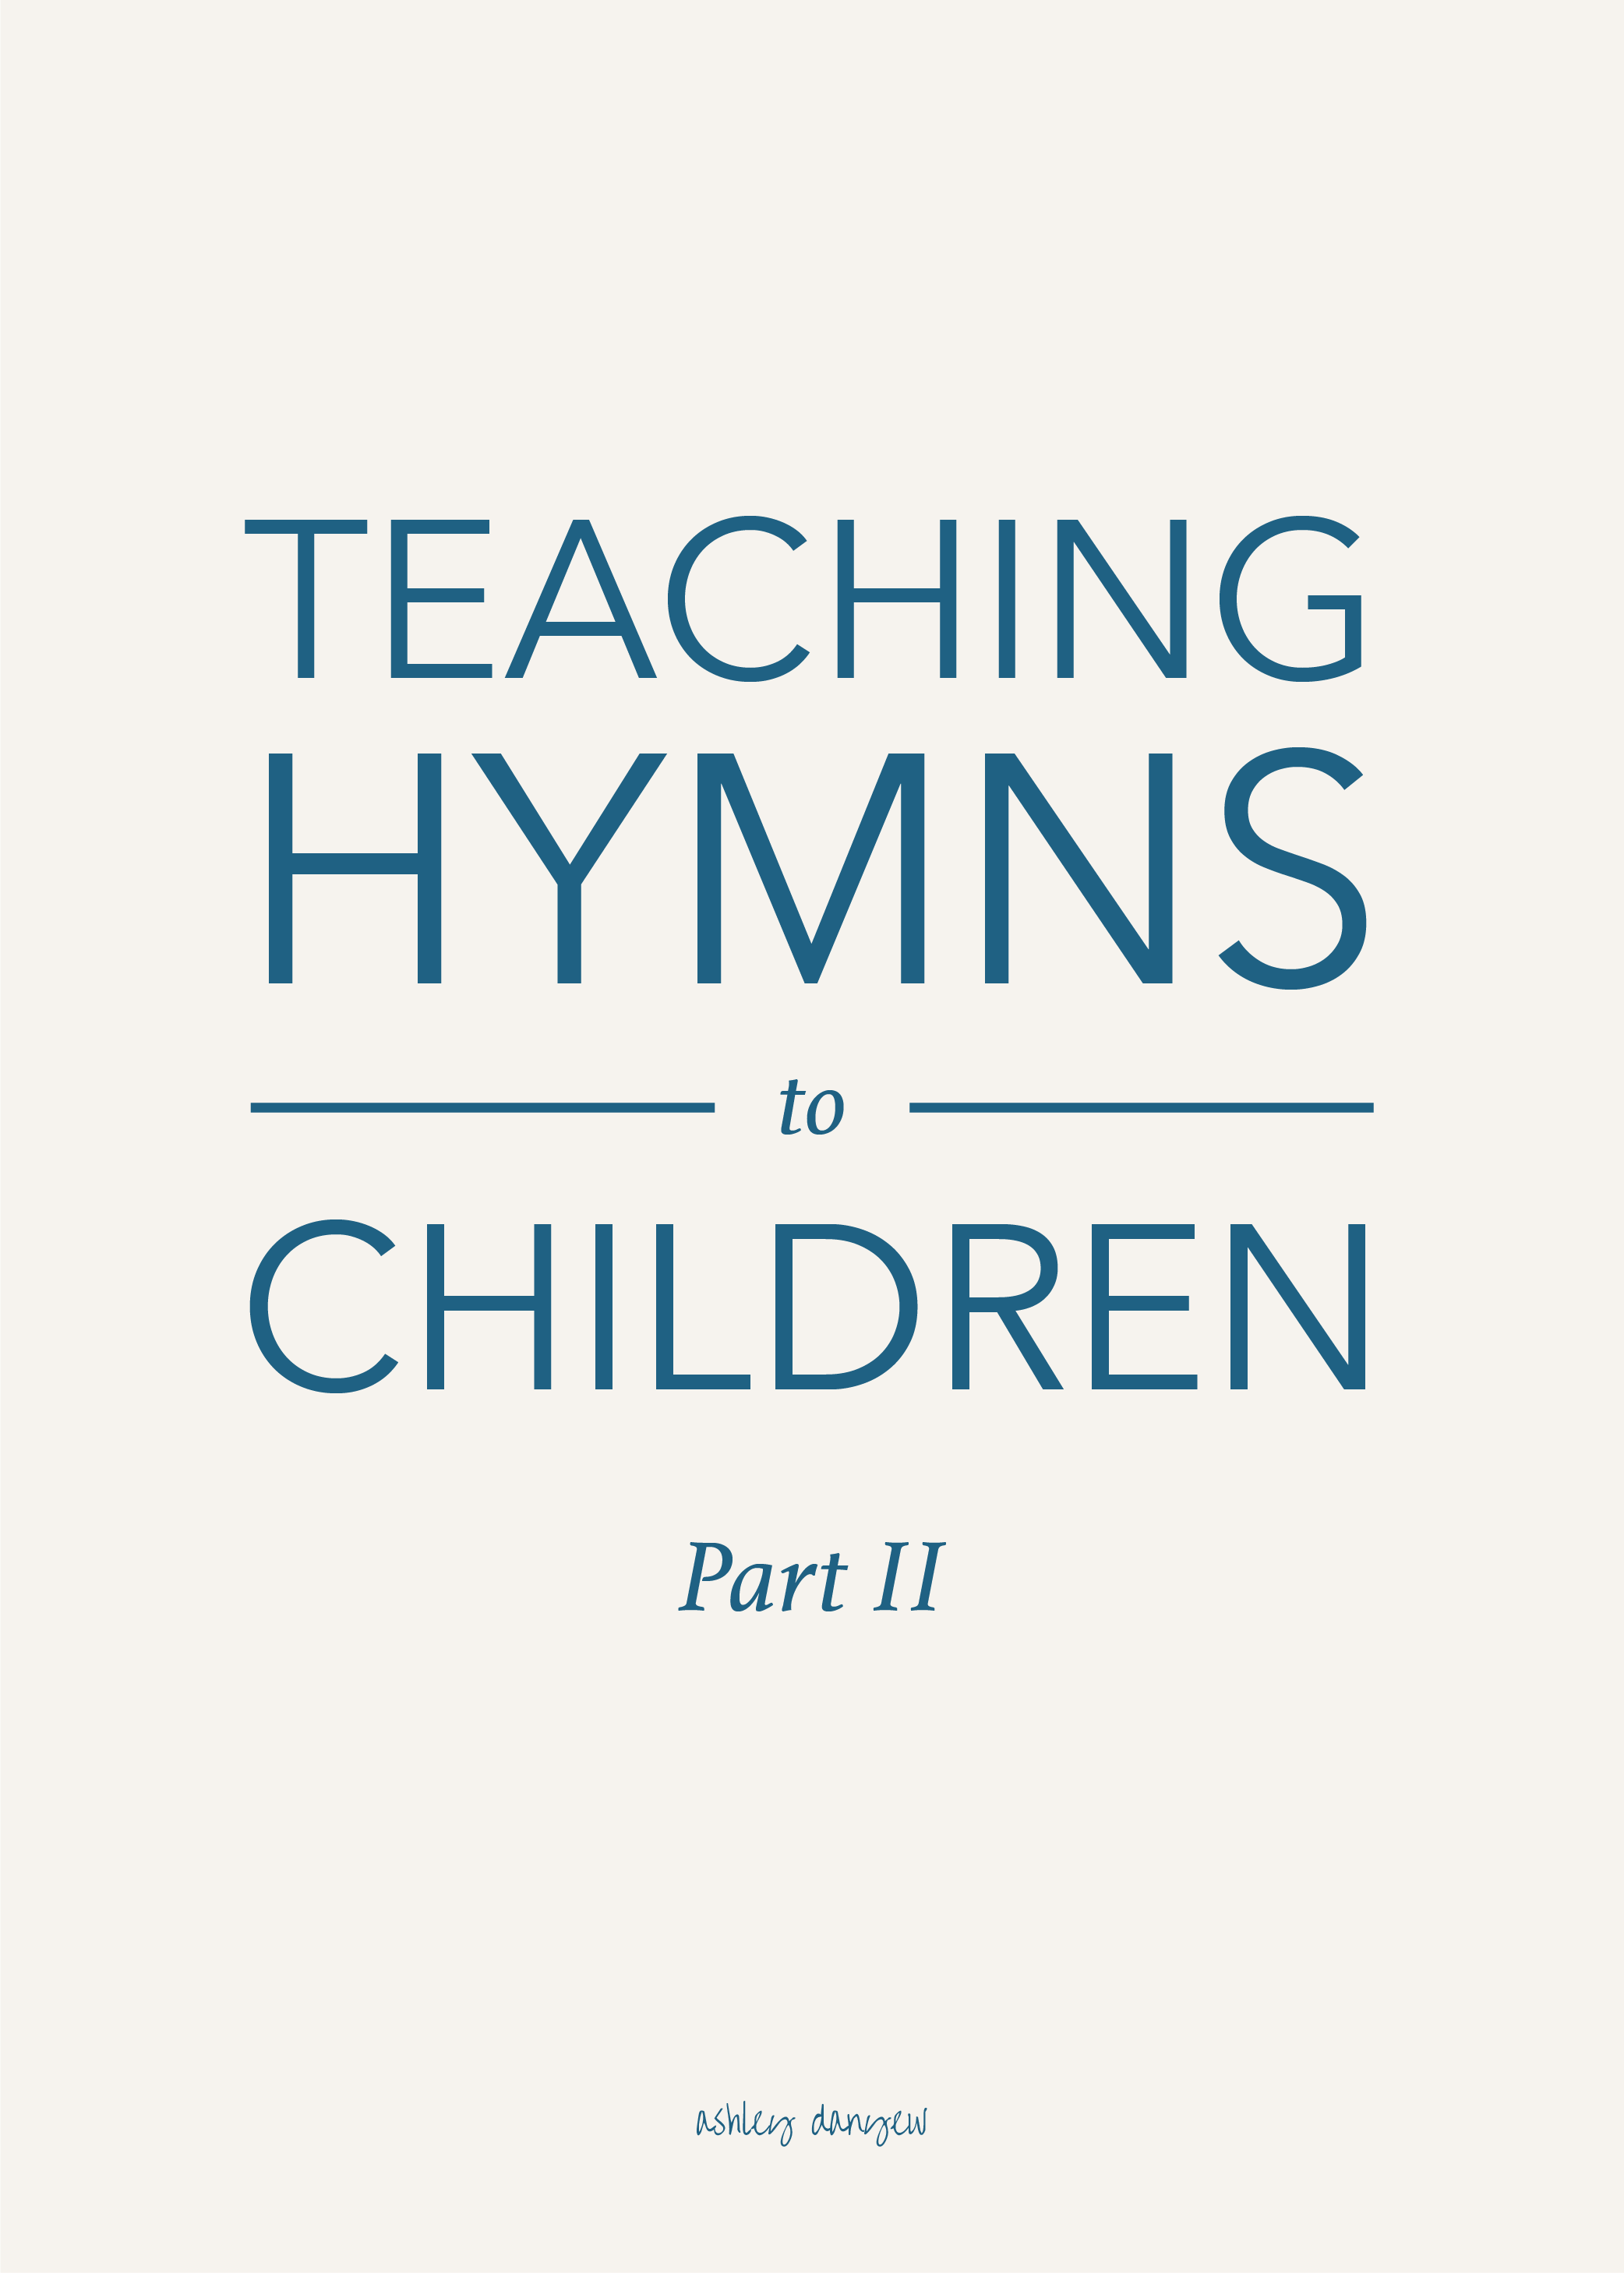 Teaching Hymns to Children_II.png